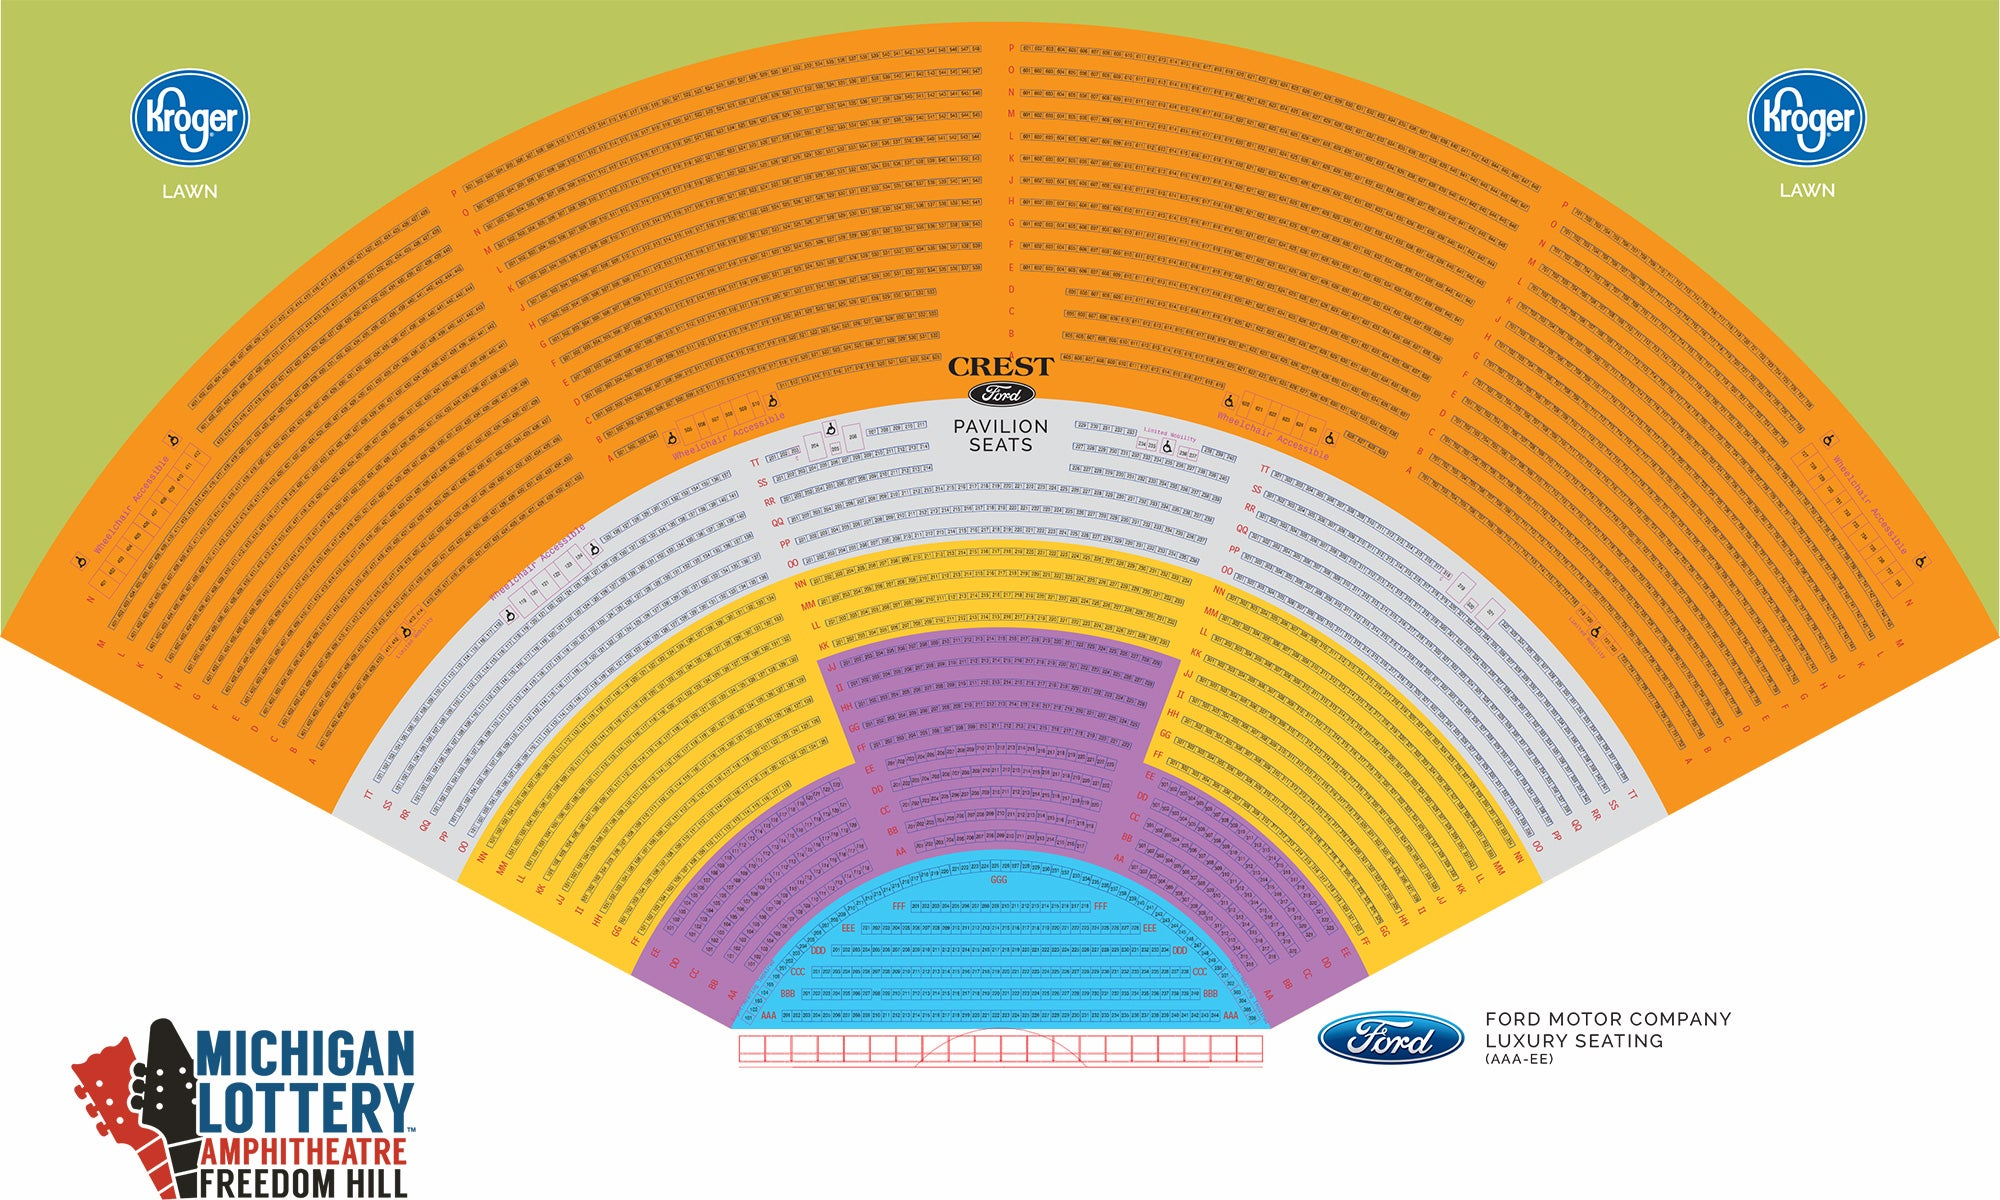 meadowbrook music festival seating chart